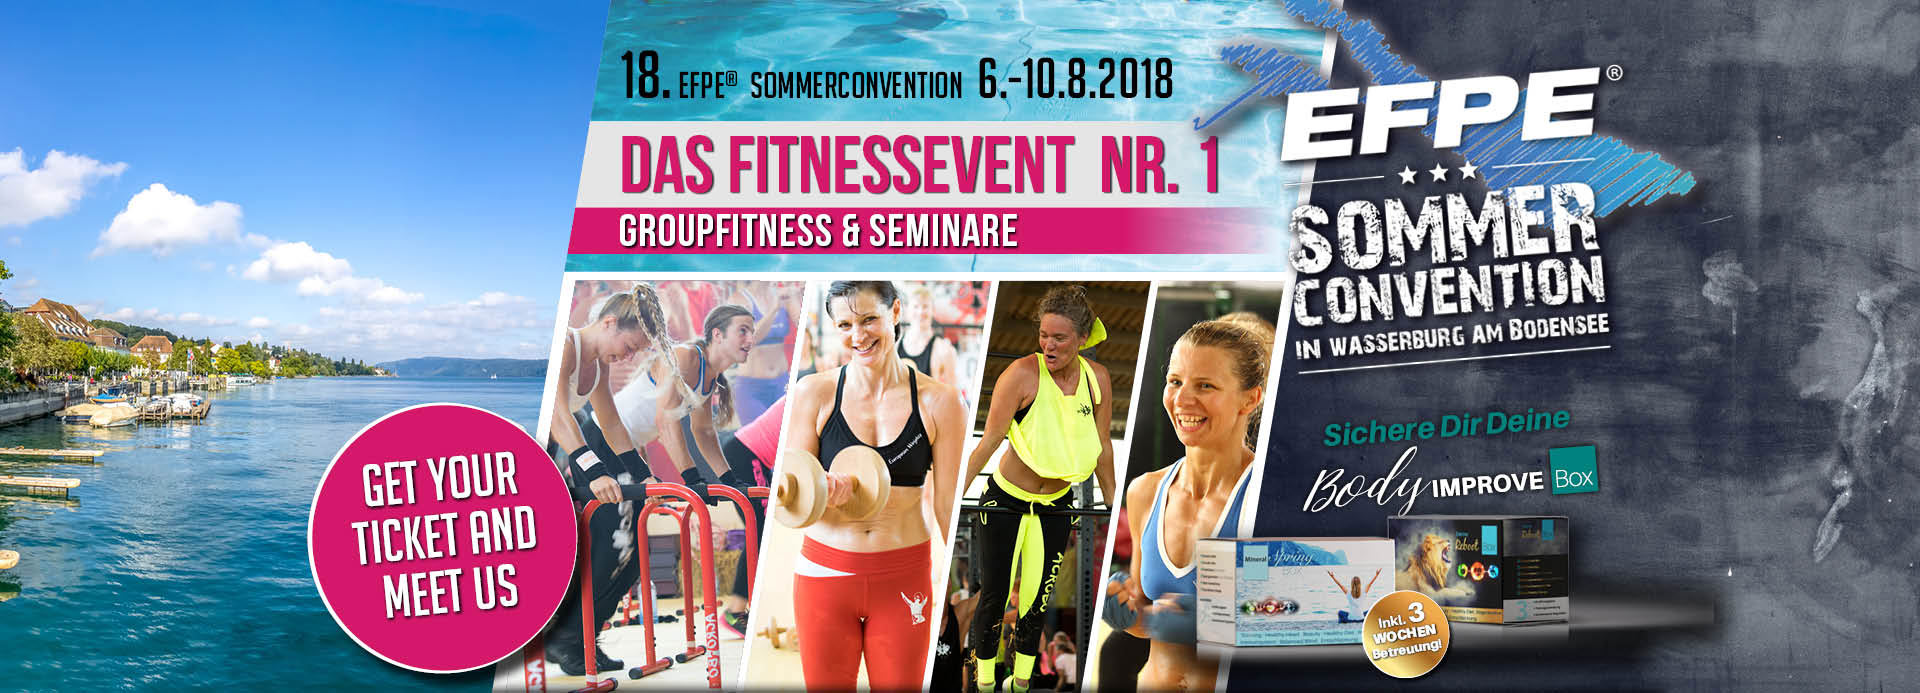 sommercamp2018_slider EFPE - European Fitness System Professional Education